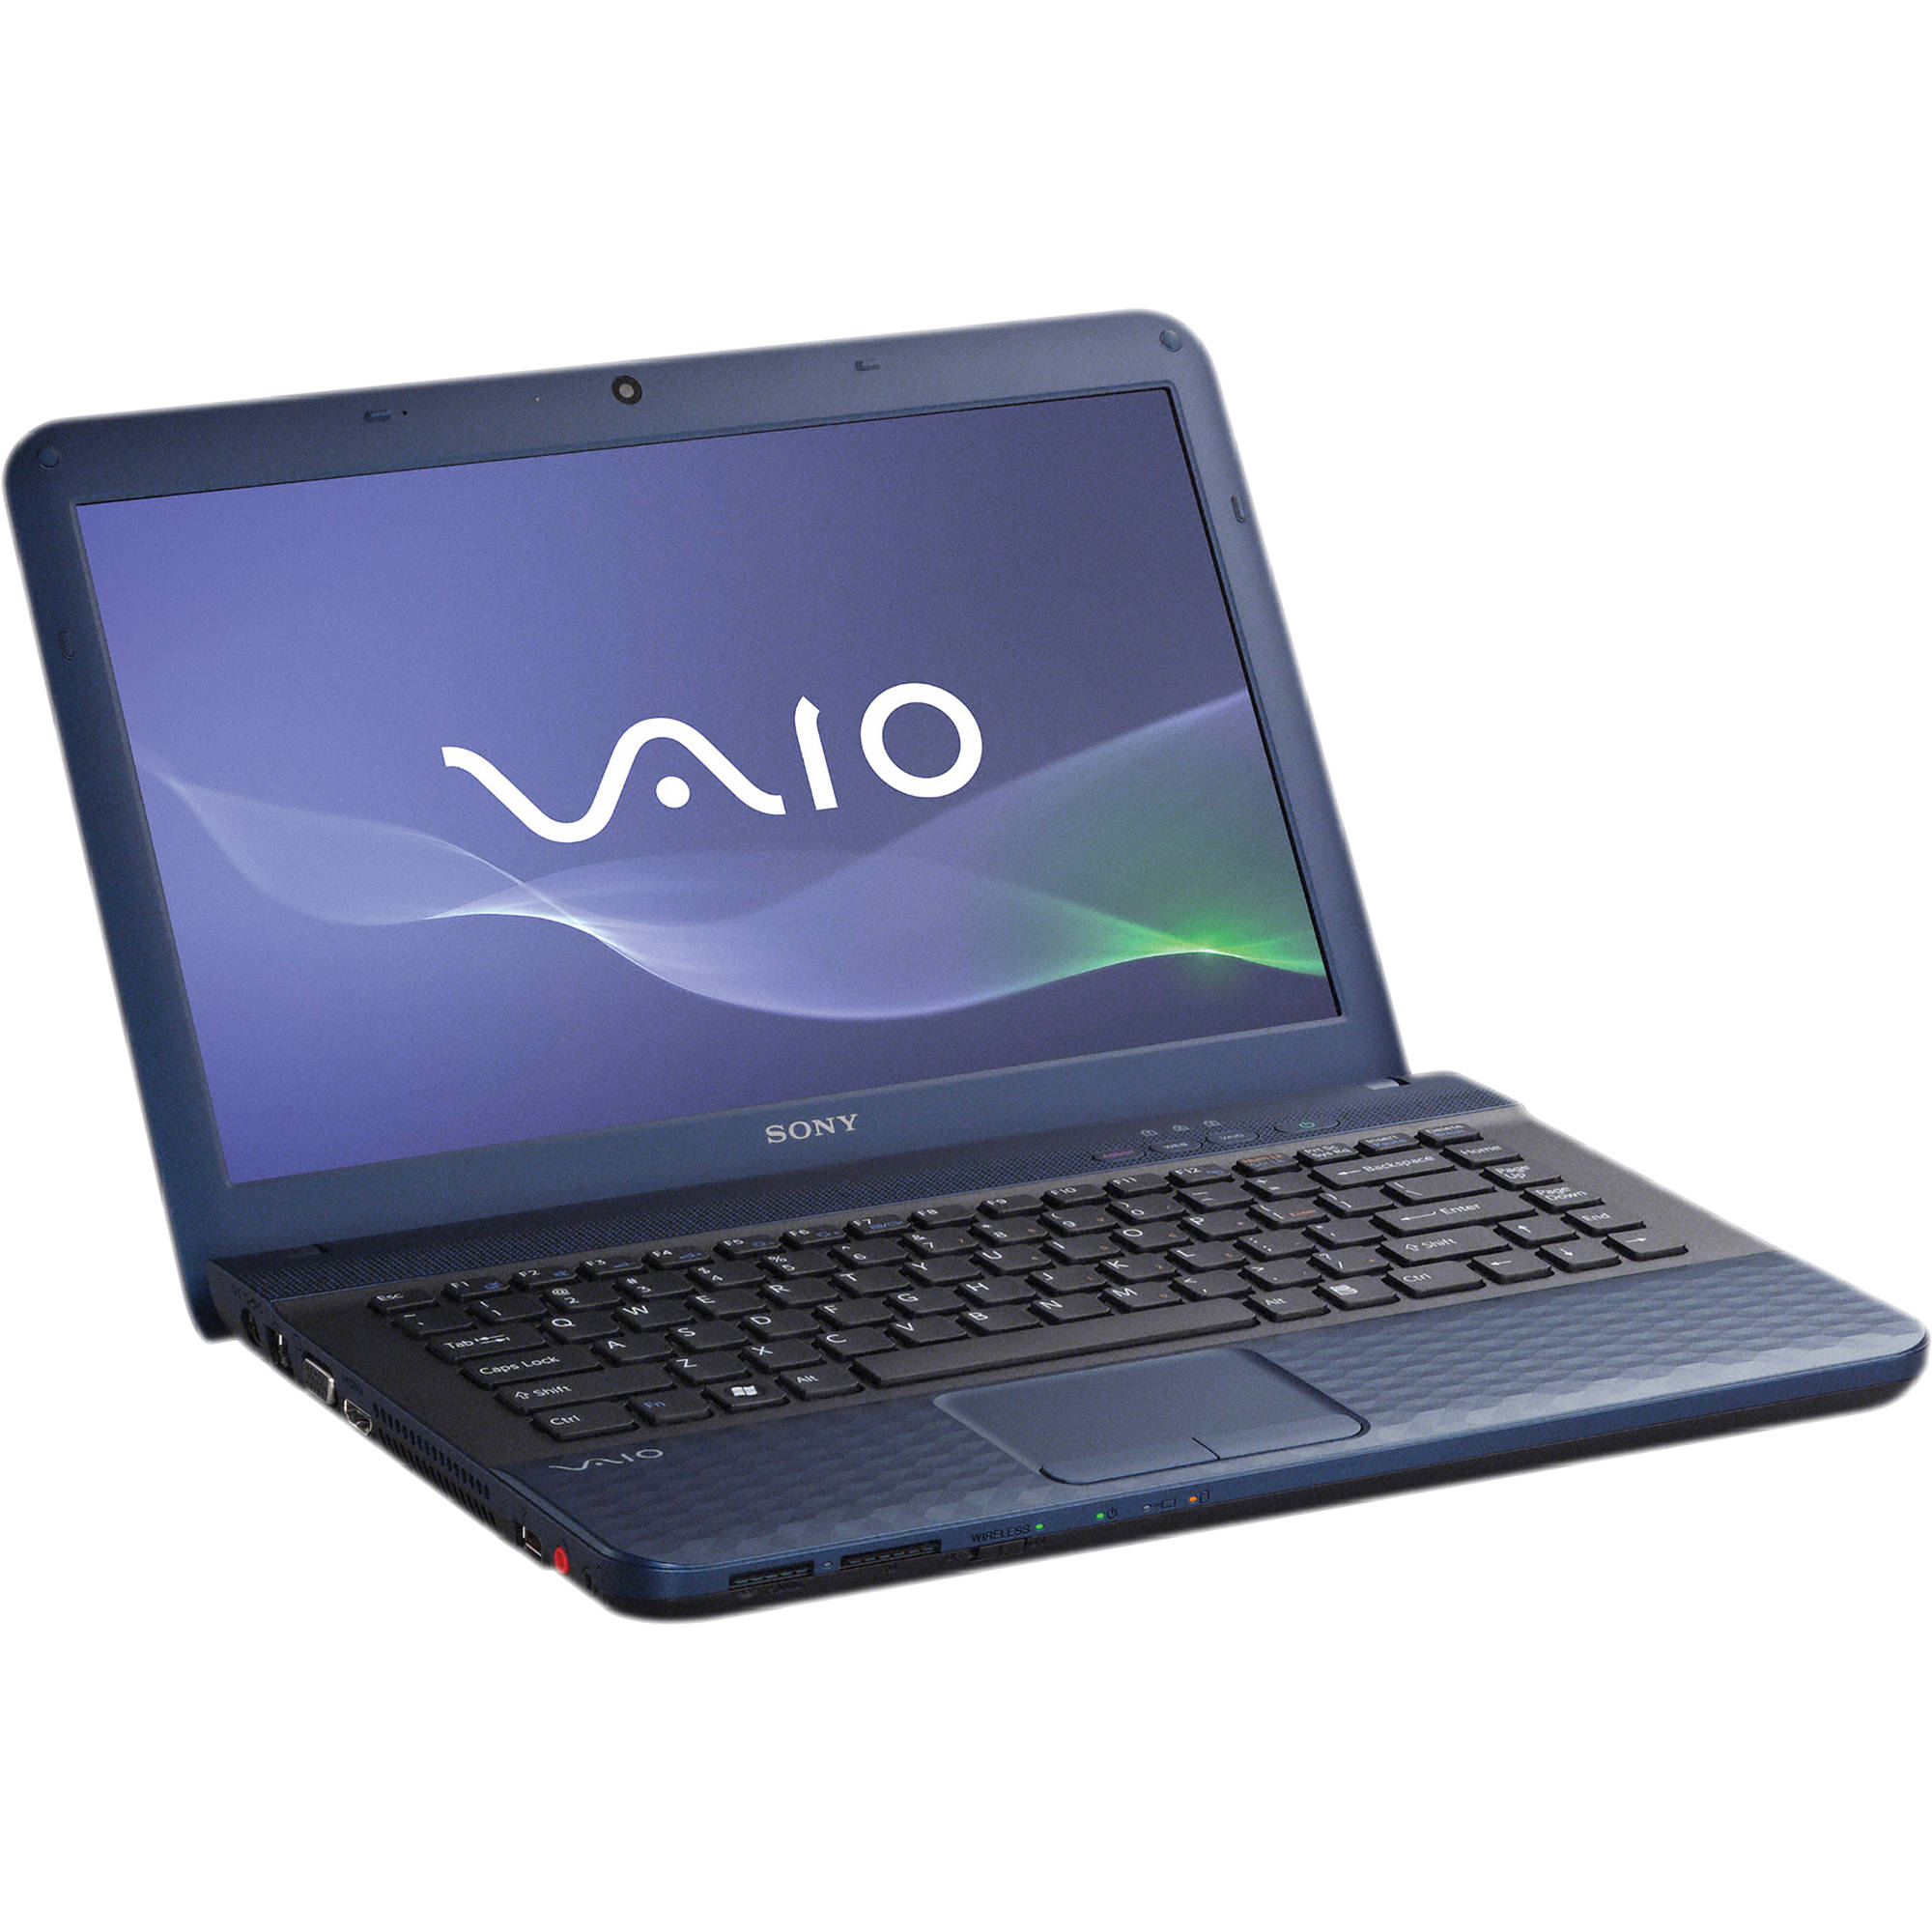 Sony Vaio VPCEG11FX Smart Network Driver for Windows 7